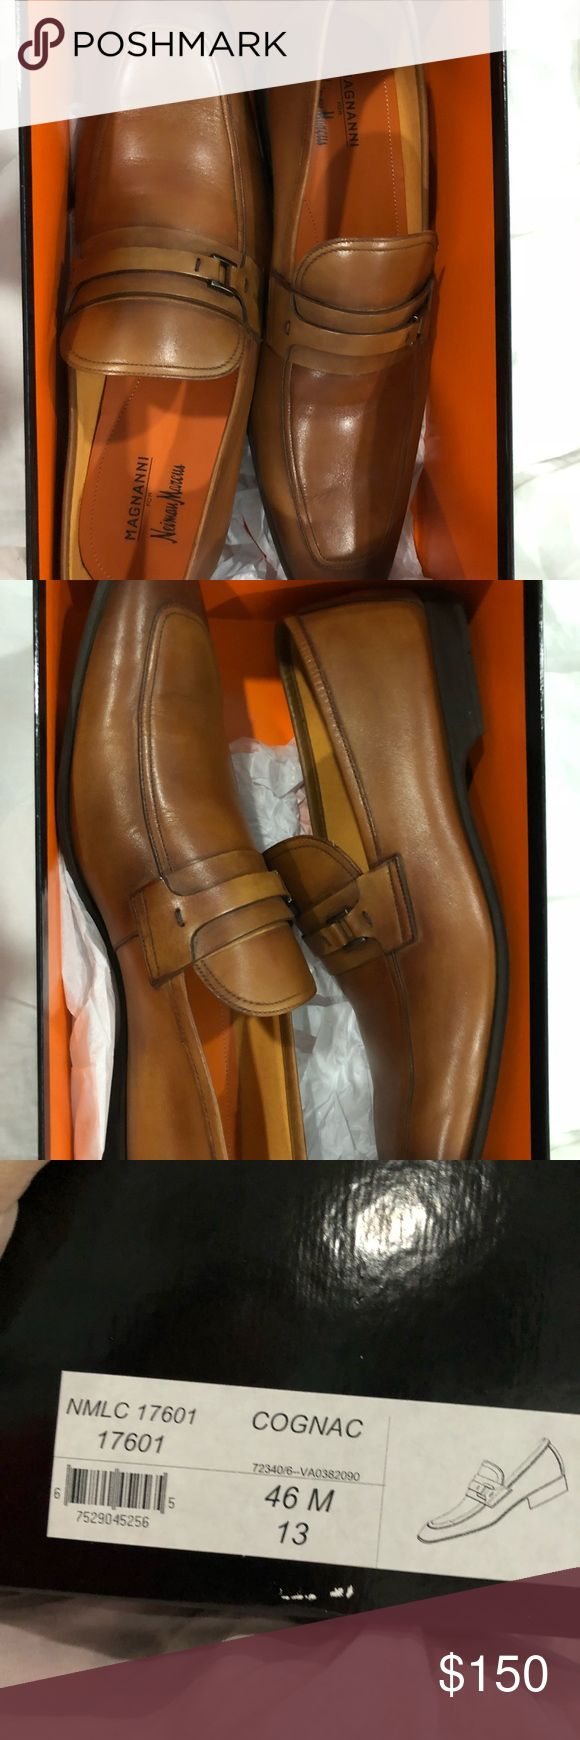 Magnanni men's shoes Size 13 BRAND NEW Magnanni Shoes Loafers & Slip-Ons